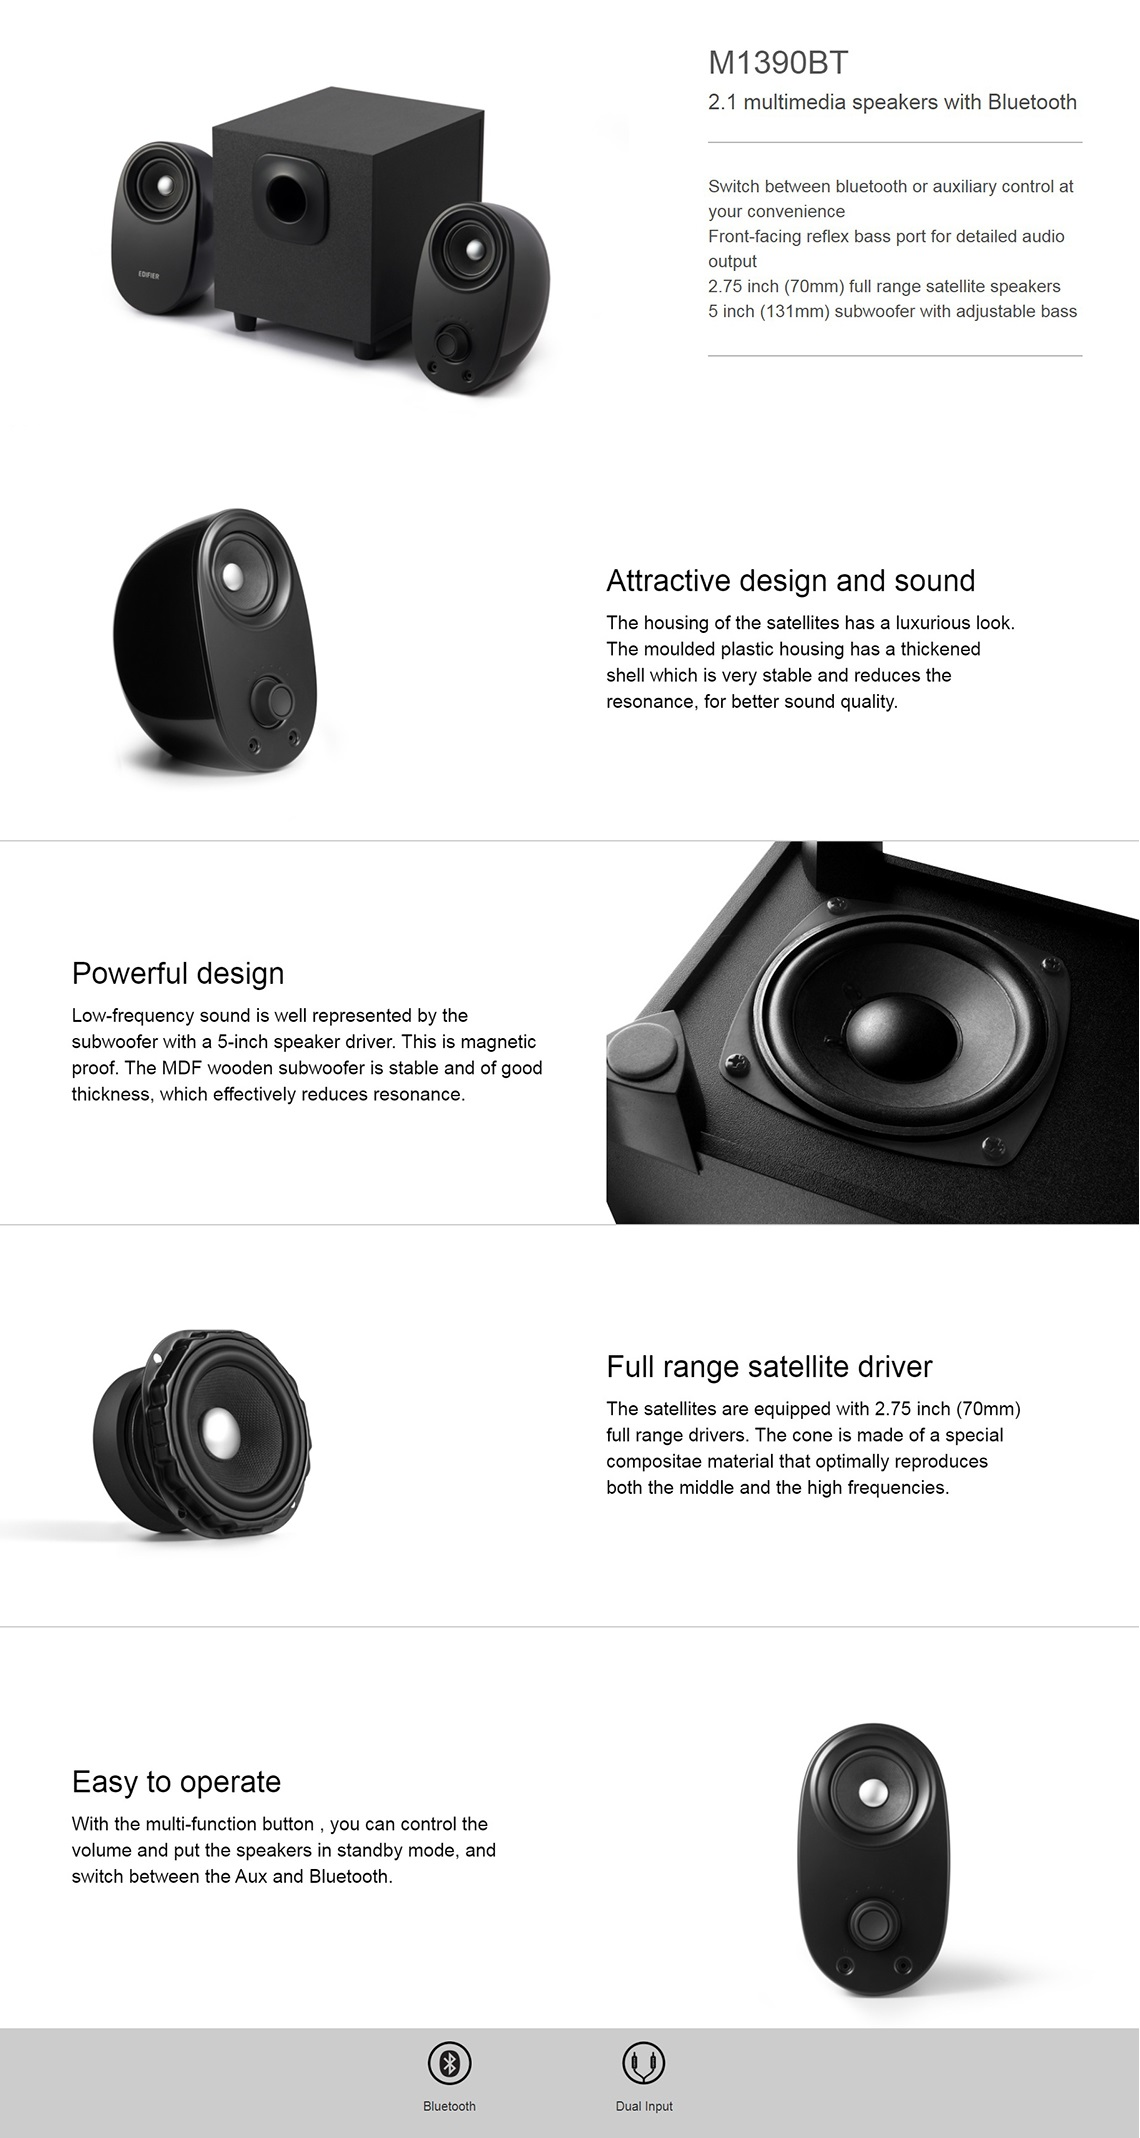 Edifier M1390BT 2.1 Bluetooth Multimedia Speakers with Bluetooth & Dual Input